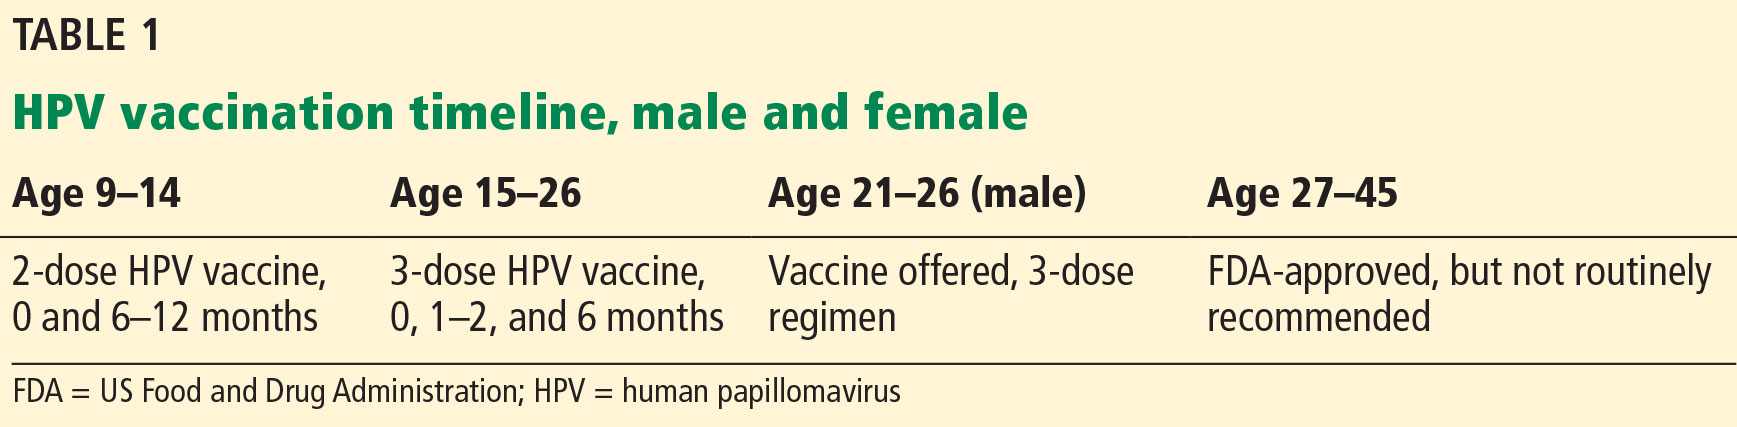 hpv vaccine how many doses